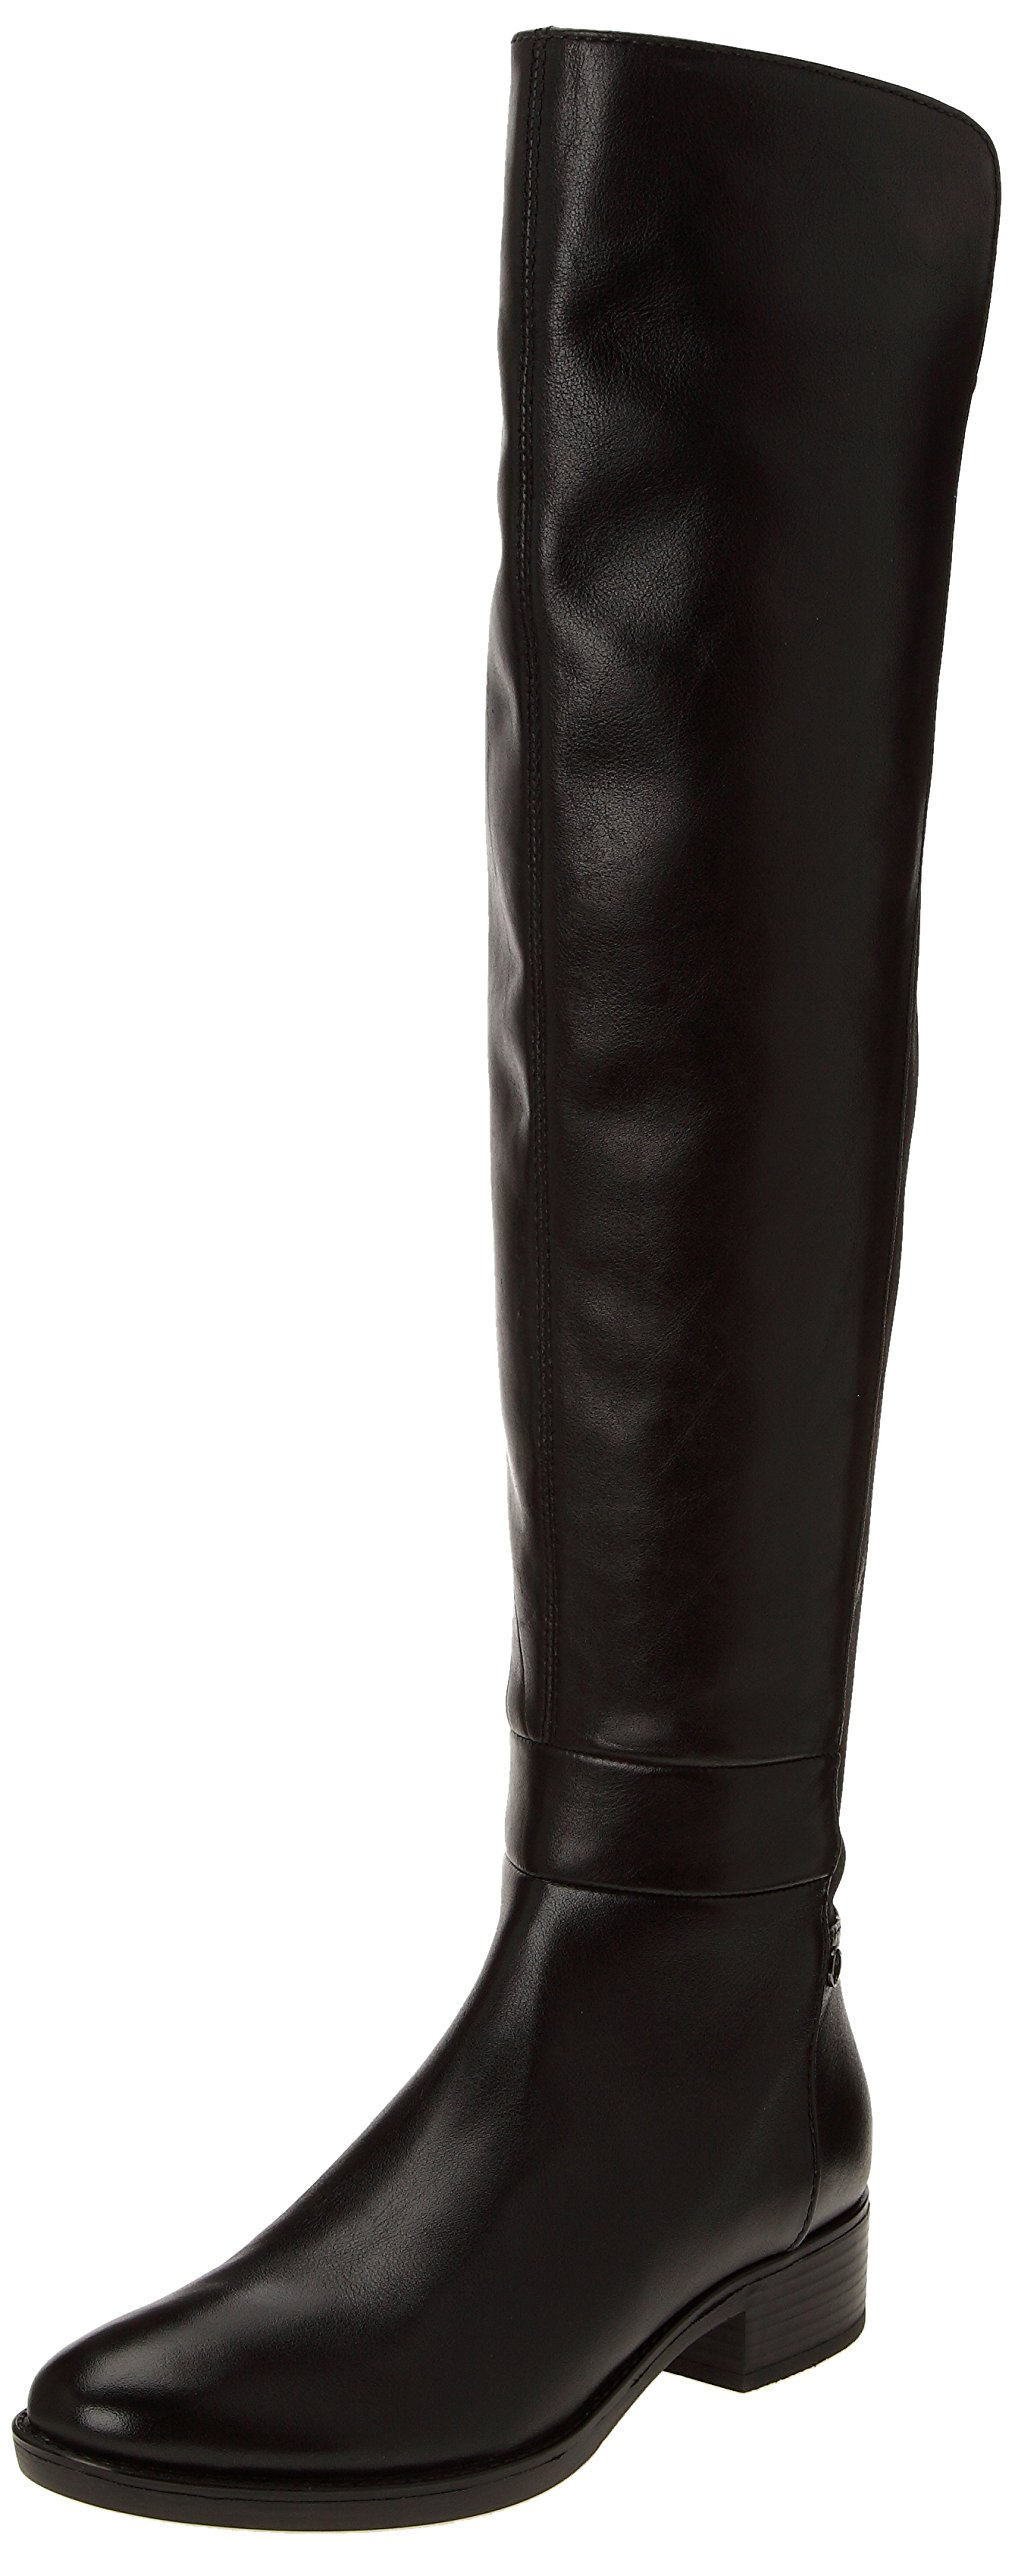 Geox Women's Felicity Over-The-Knee Riding Boot, Black, 35 BR/5 M US